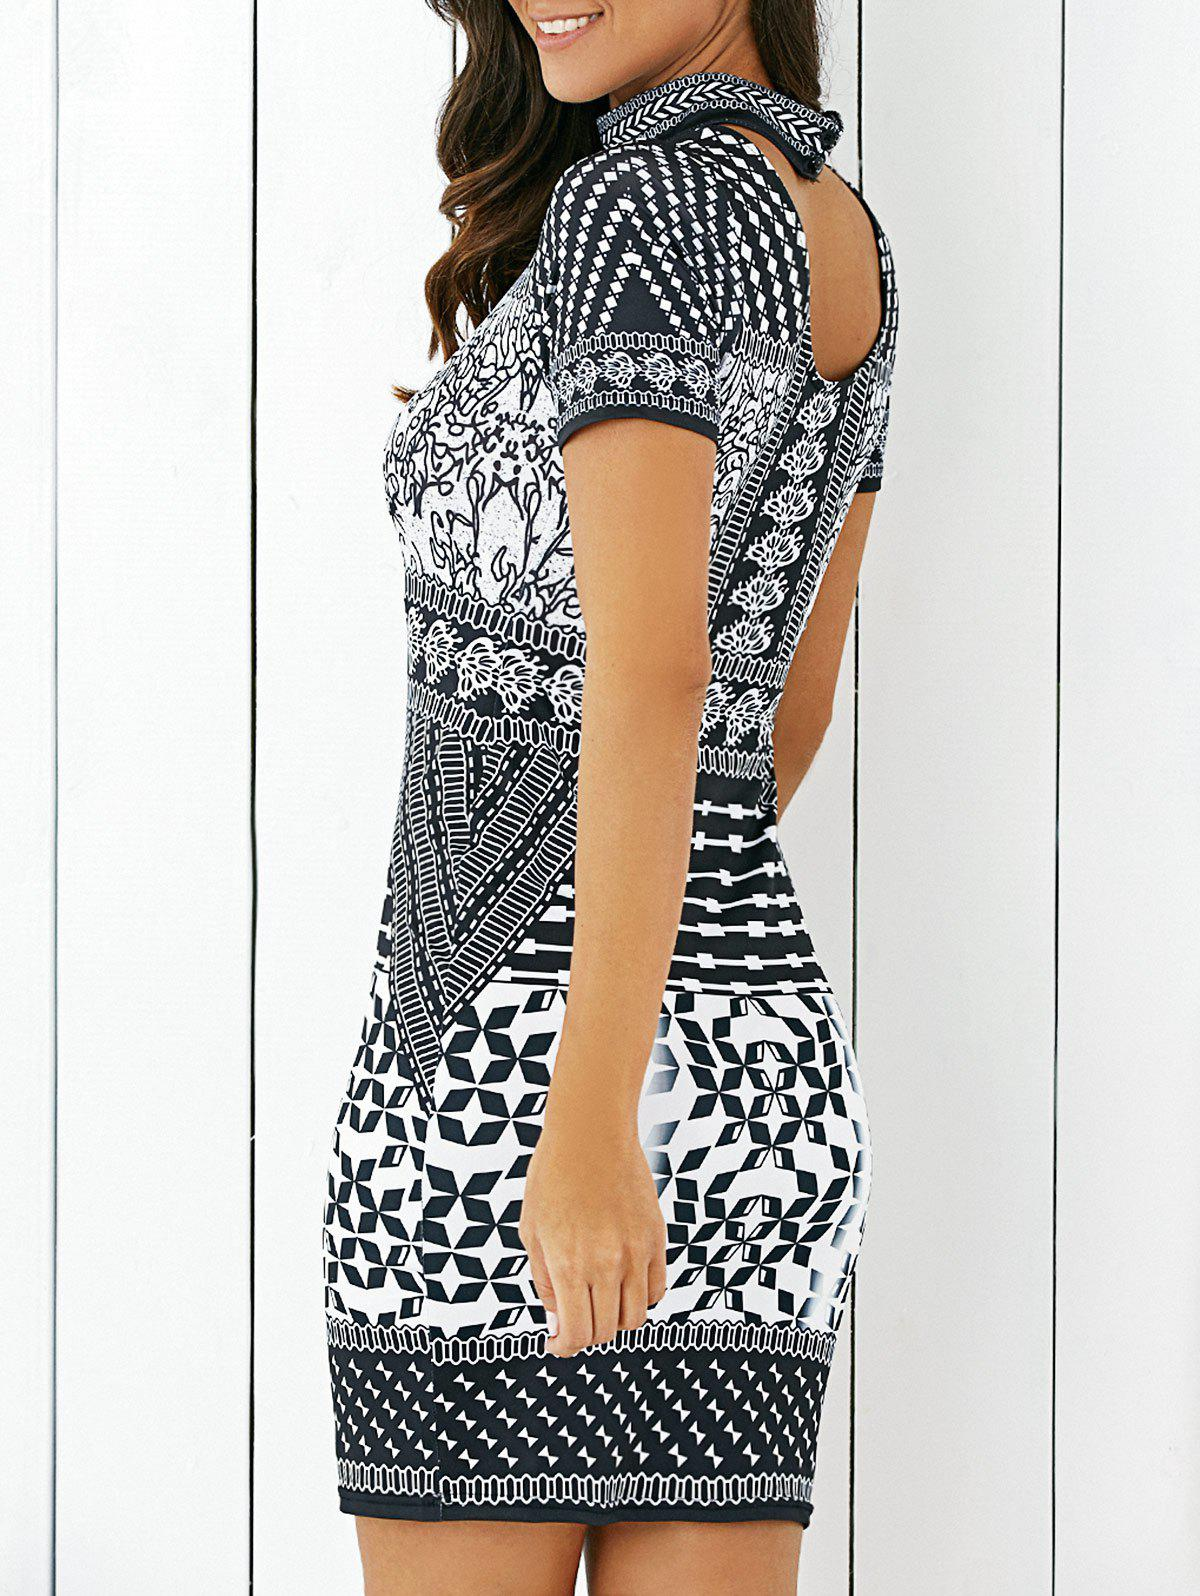 Ethnic Tribal Print Hollow Out Dress For Women - WHITE/BLACK XL